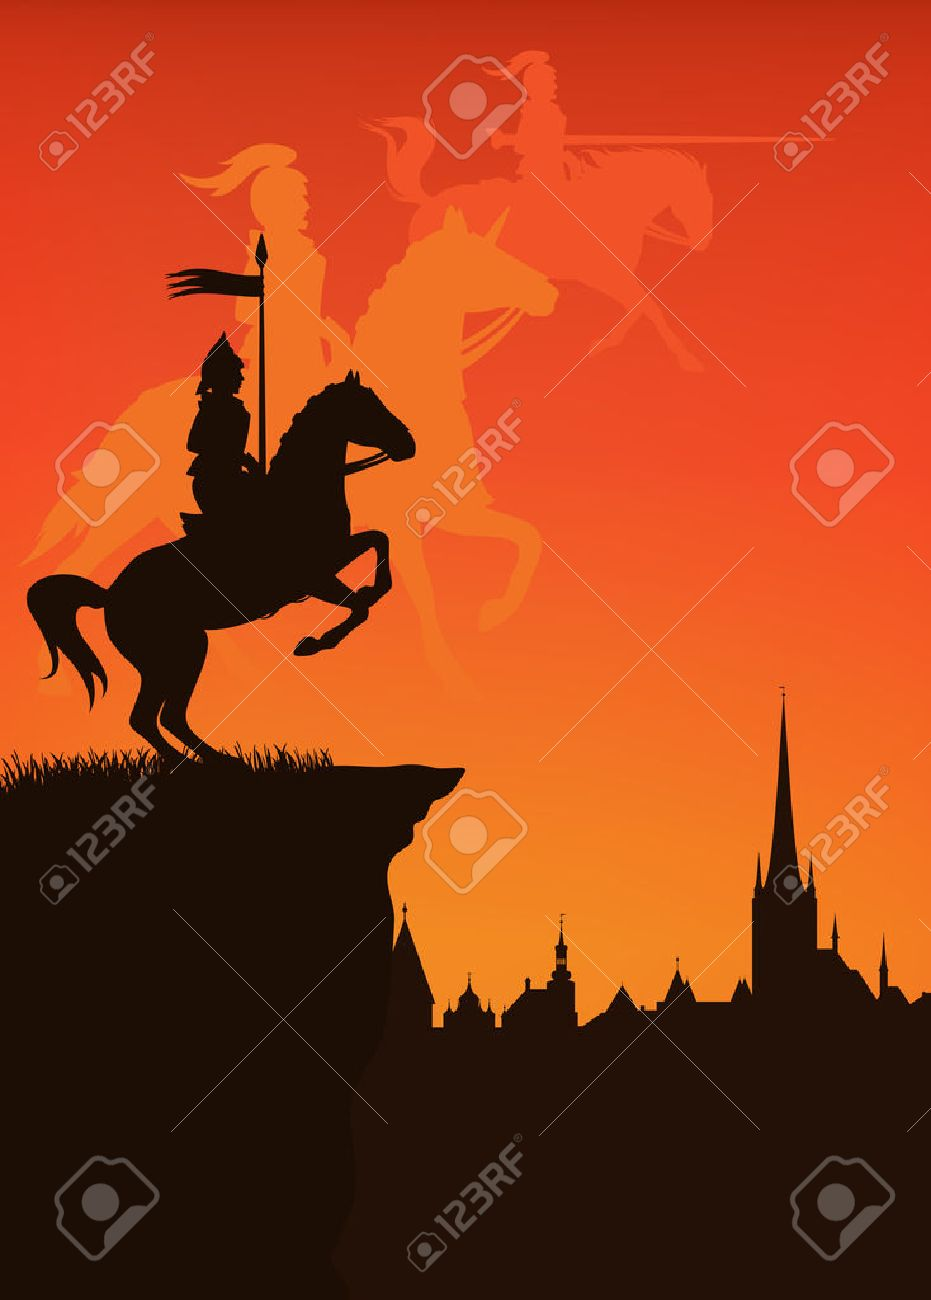 medieval times town with knight and shadow silhouettes of guards at the sunset - 25550384